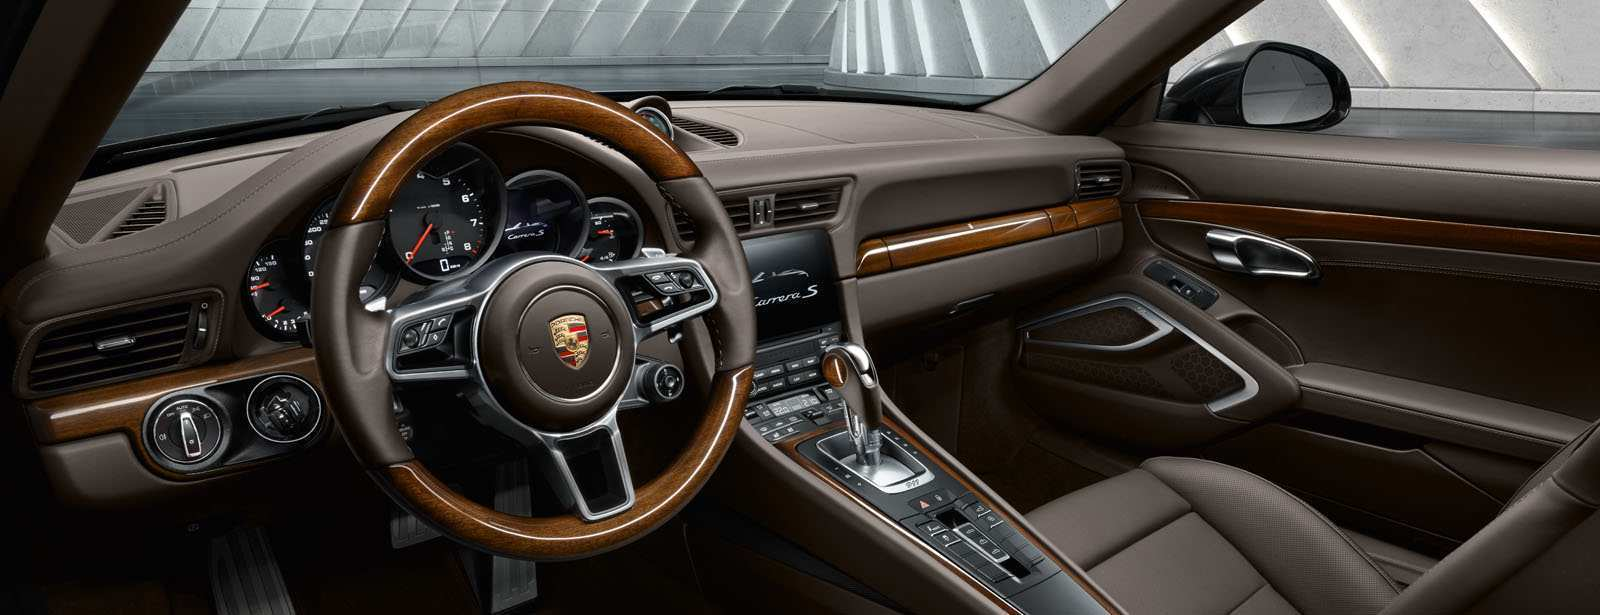 45 Best Review 2019 Porsche 911 Interior Redesign and Concept with 2019 Porsche 911 Interior